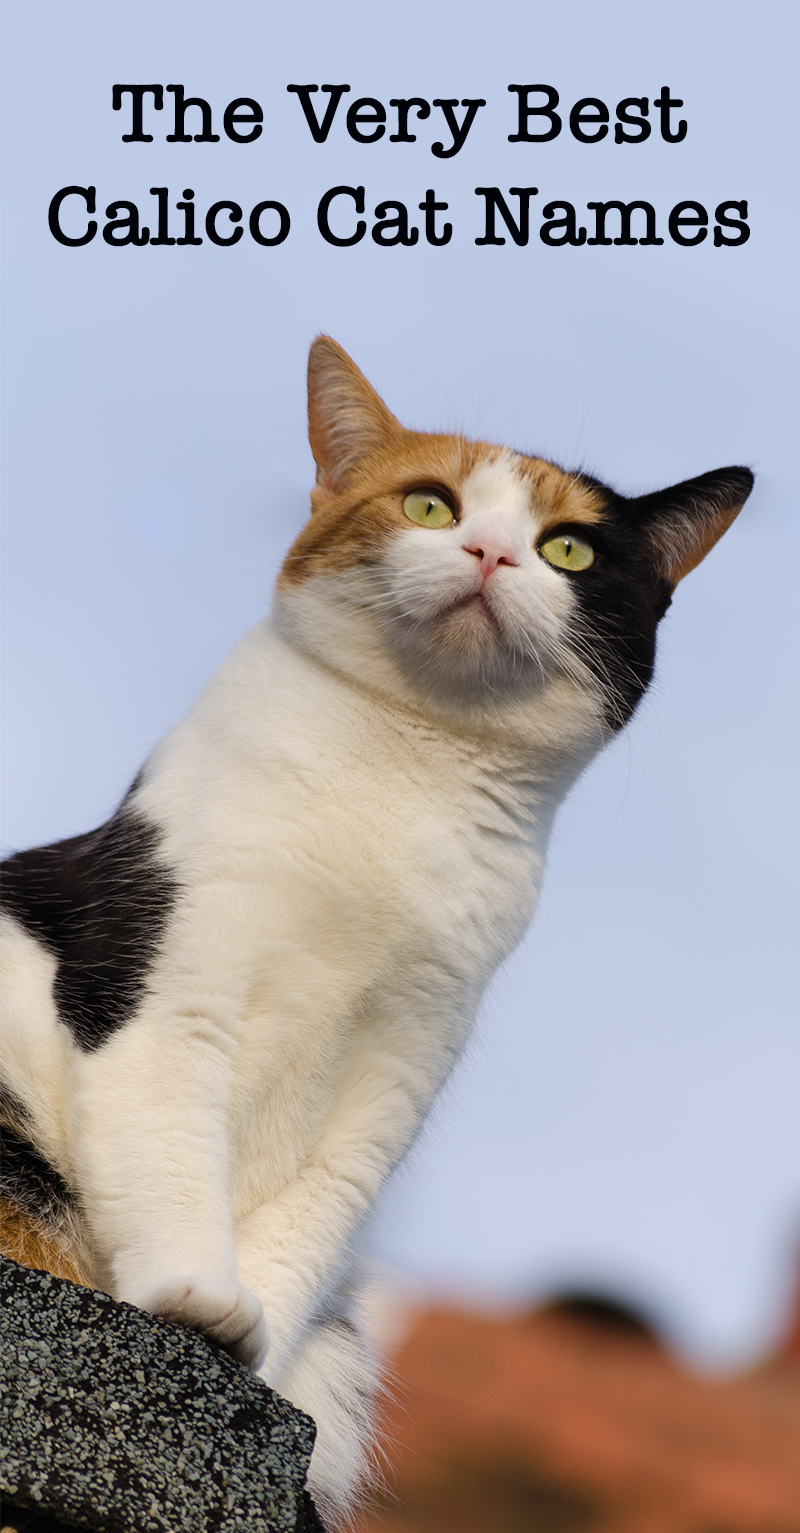 Calico Cat Names - 250 Great Ideas For Naming Your Calico Kitten